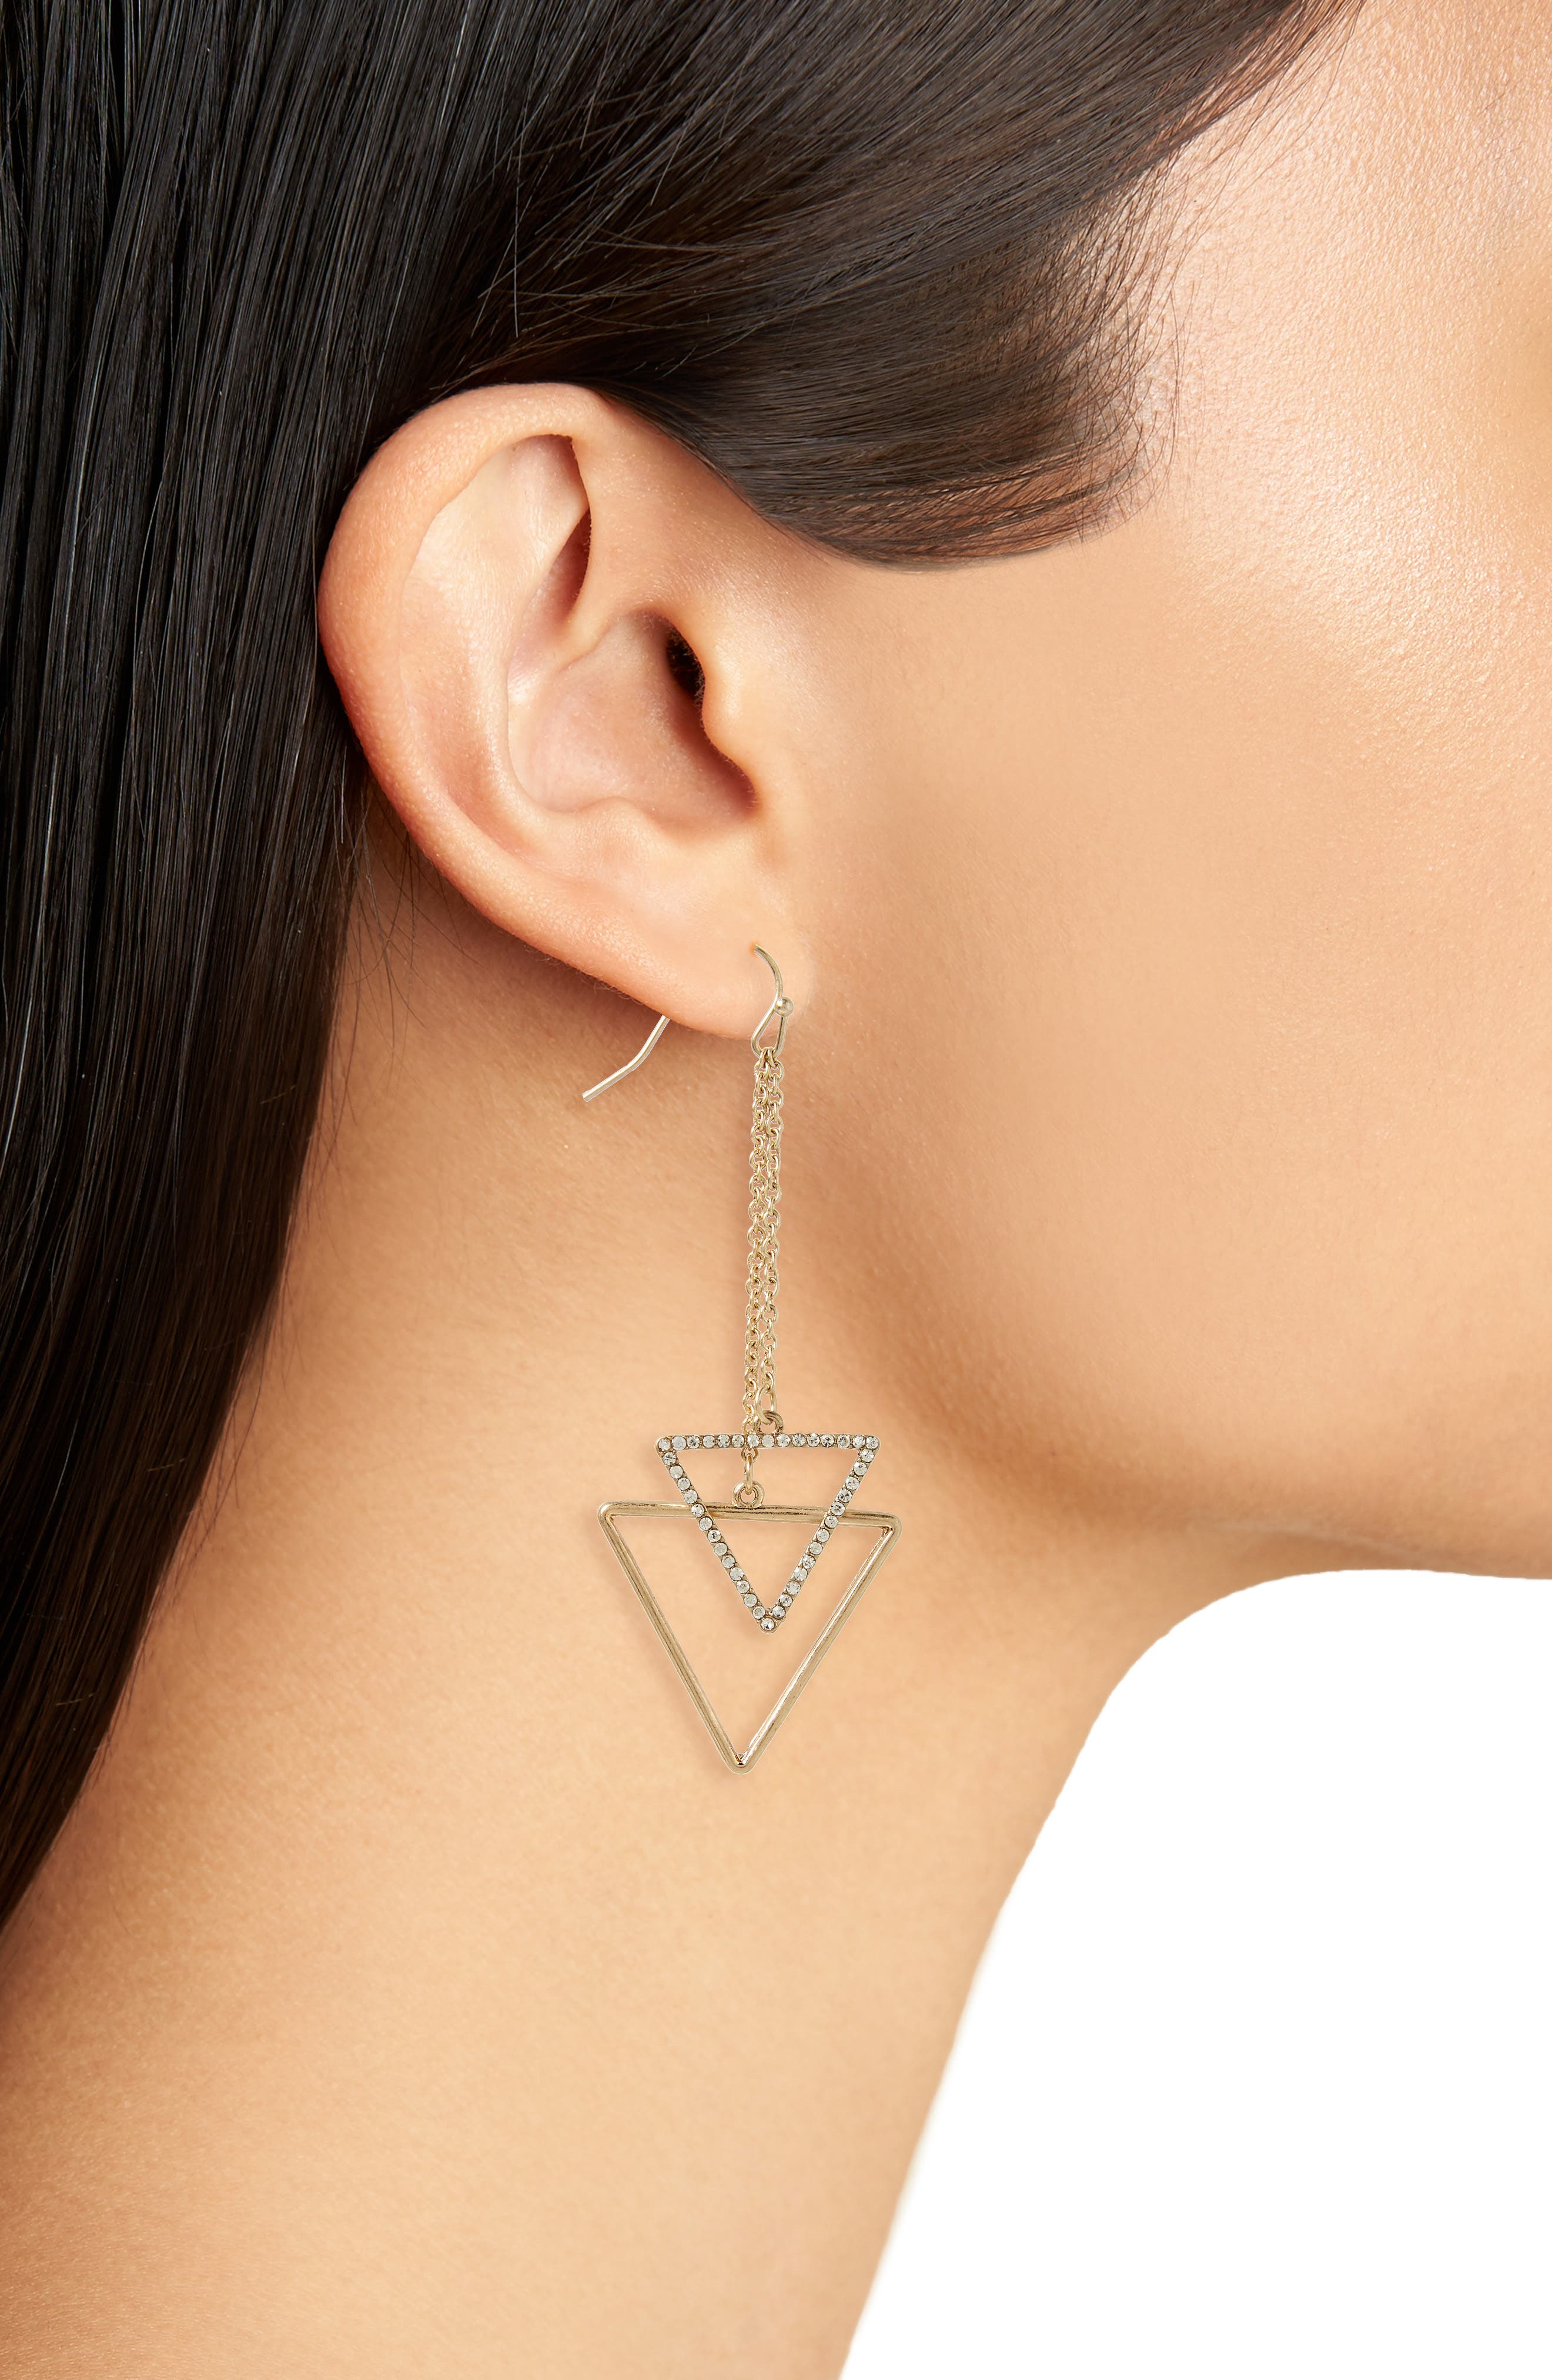 Chain Drop Triangle Earrings,                             Alternate thumbnail 2, color,                             710